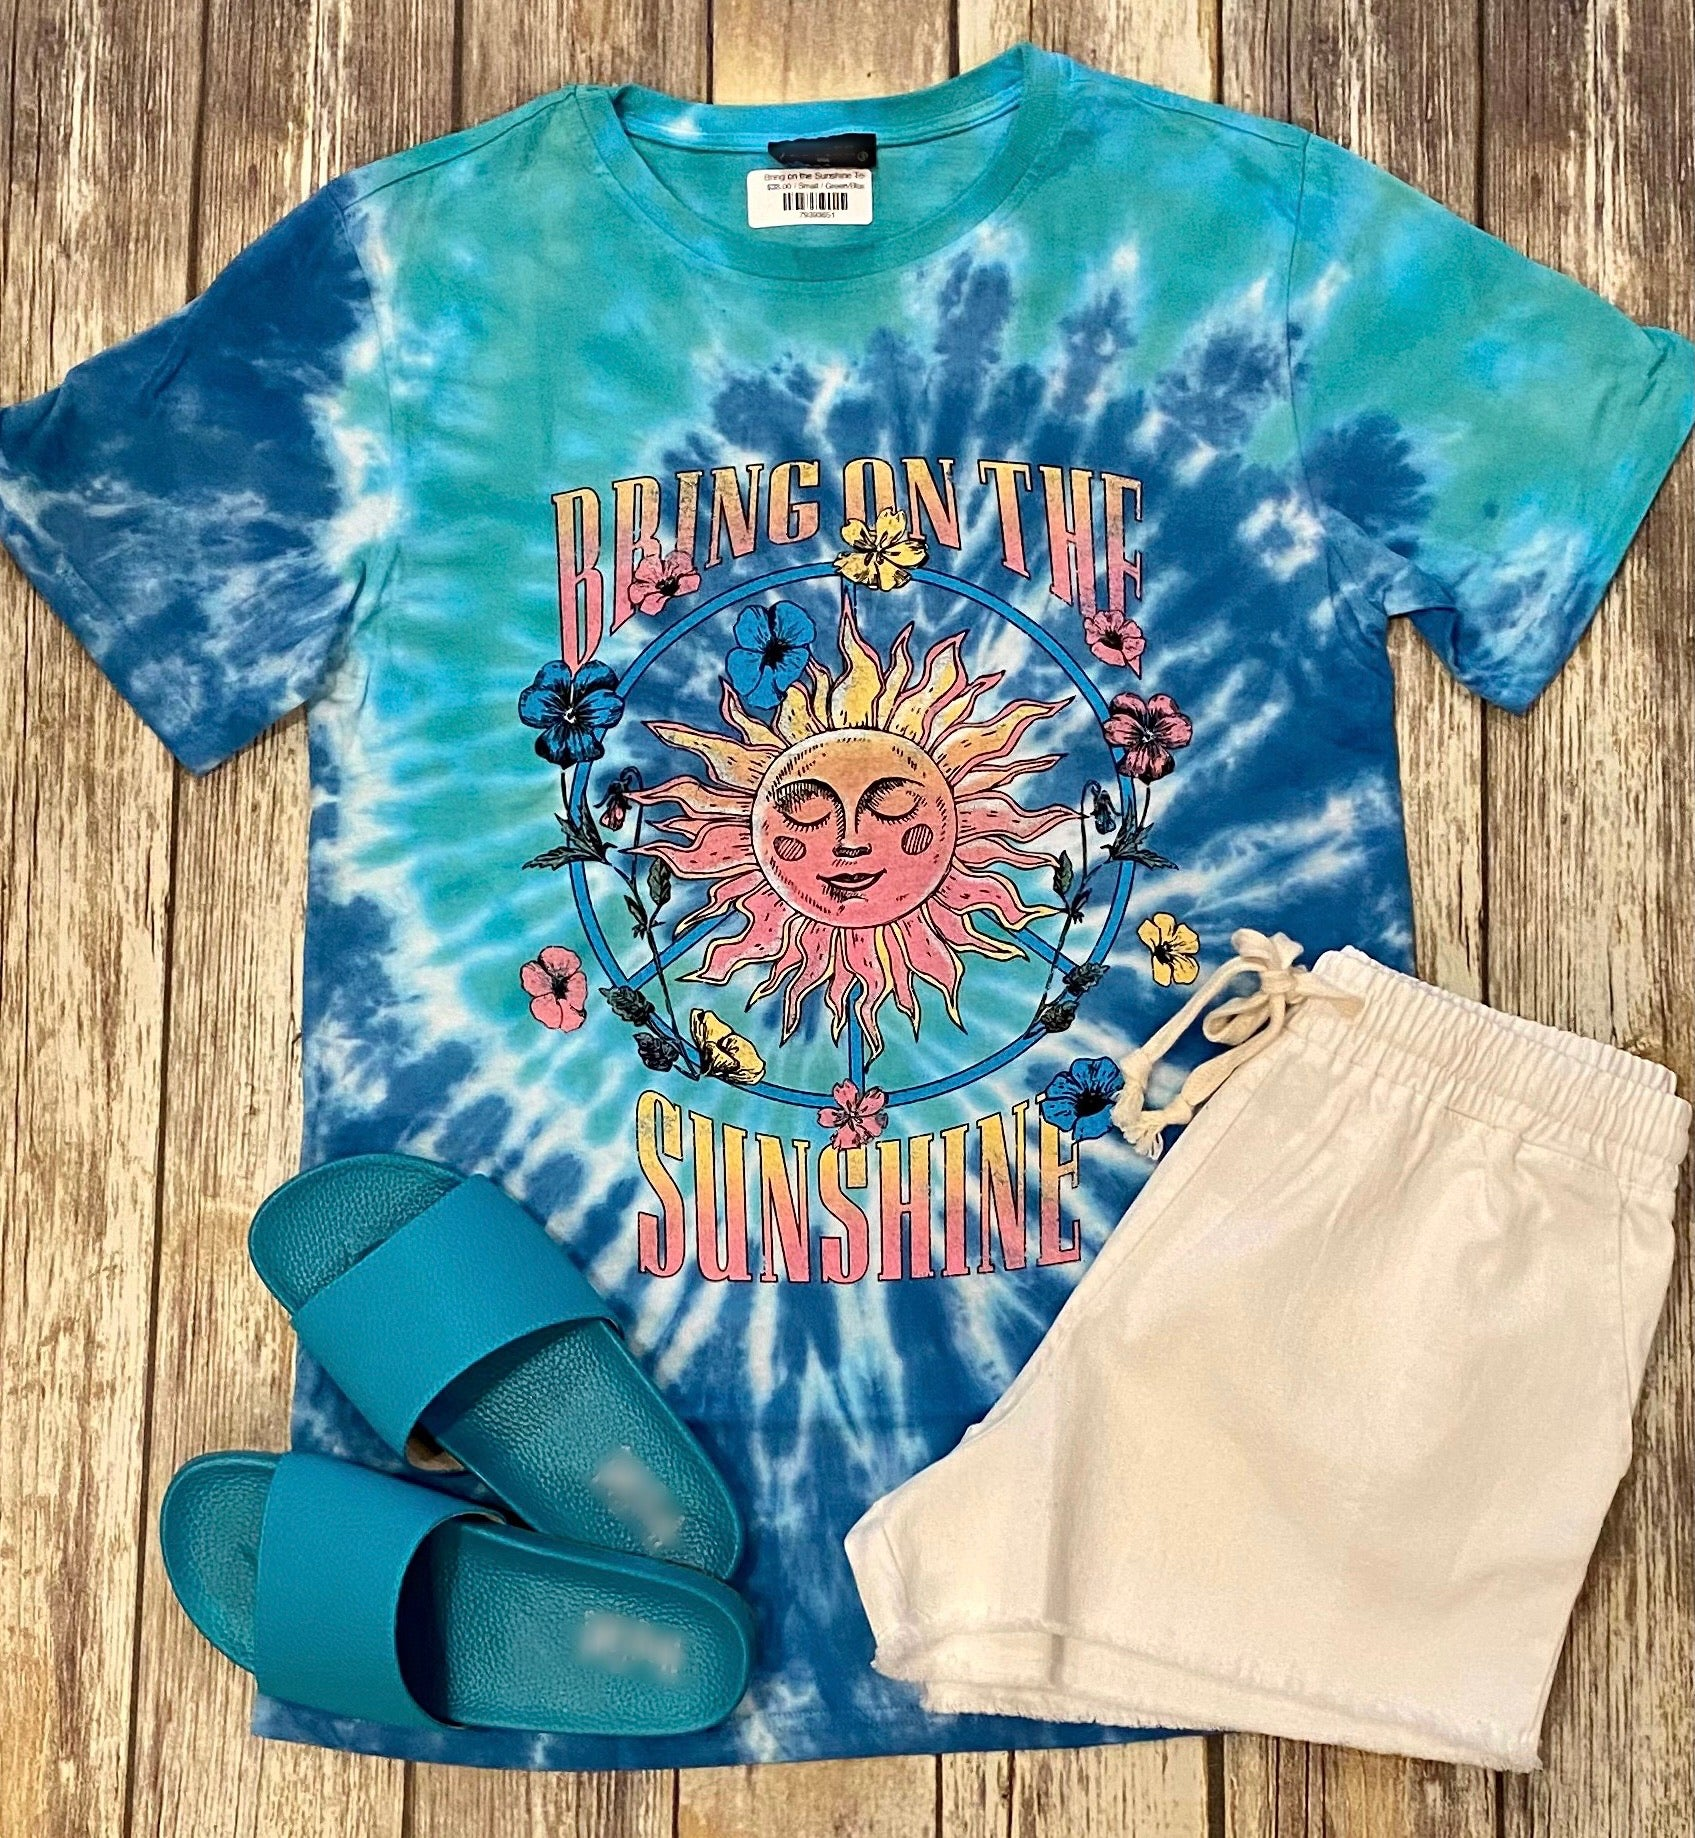 Bring on the Sunshine Tee